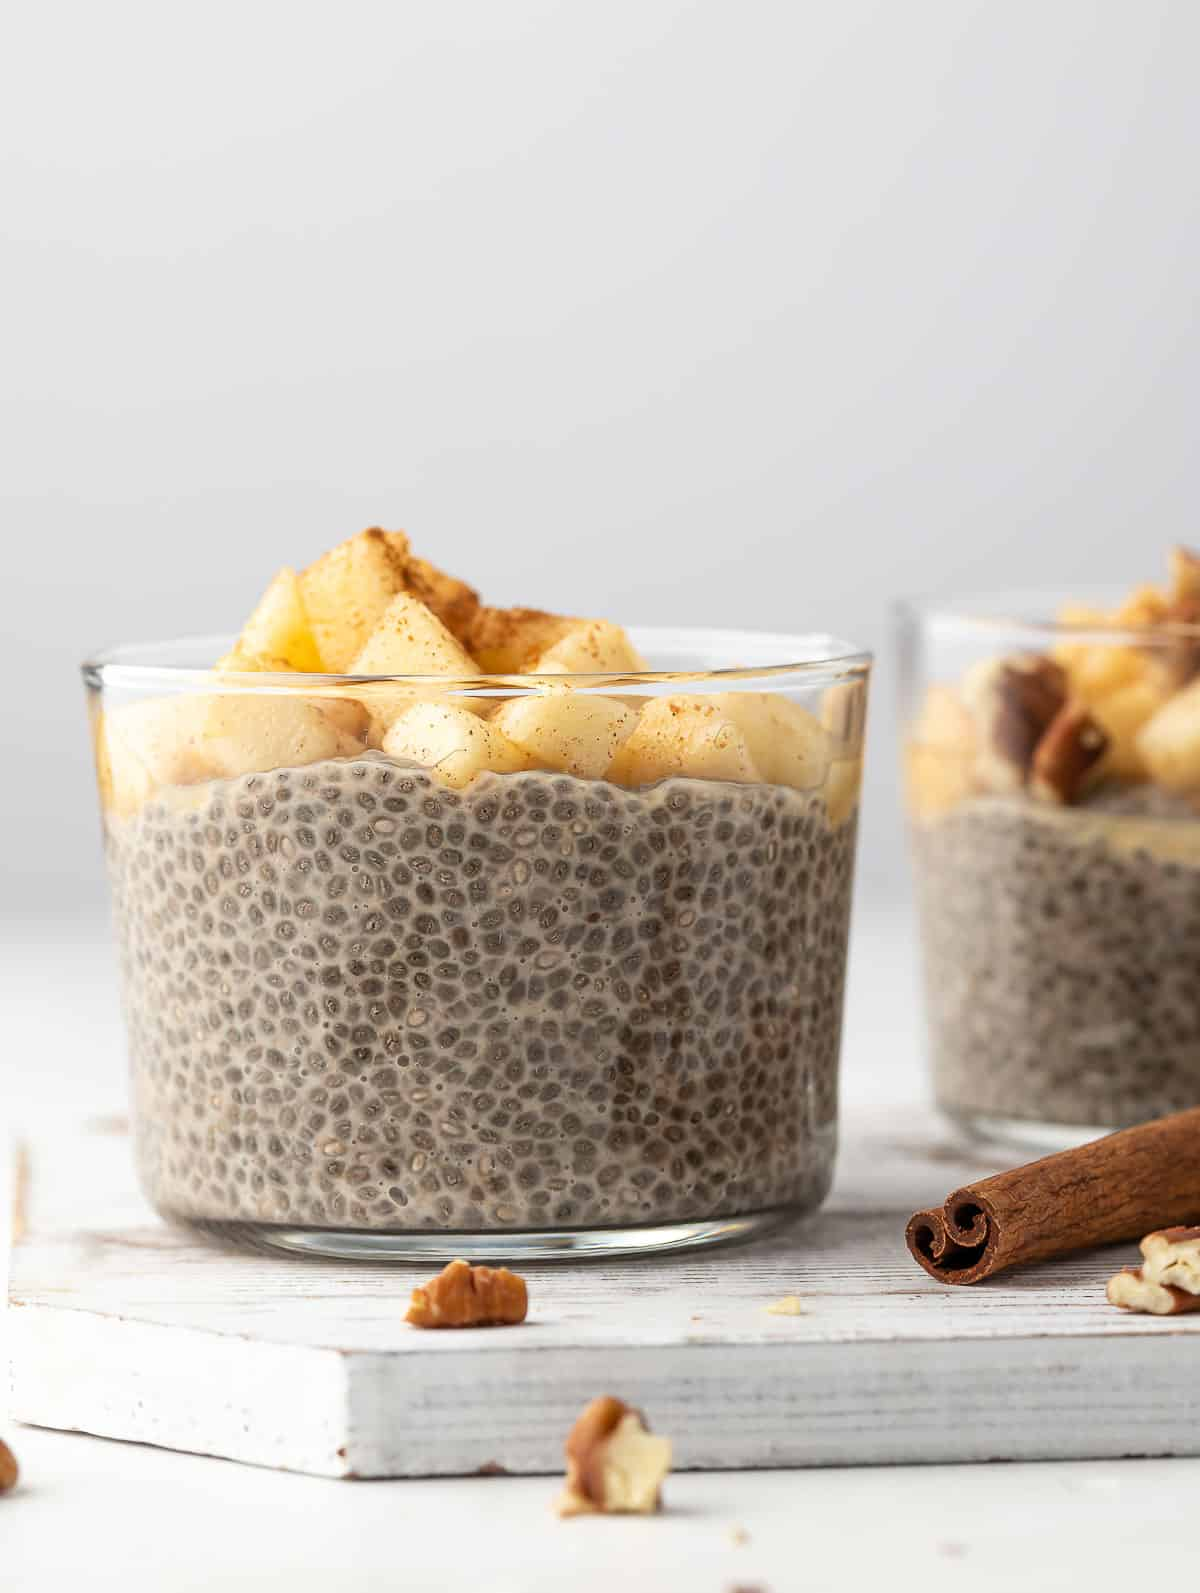 Overnight Chia Pudding topped with apples and sprinkled with cinnamon powder.